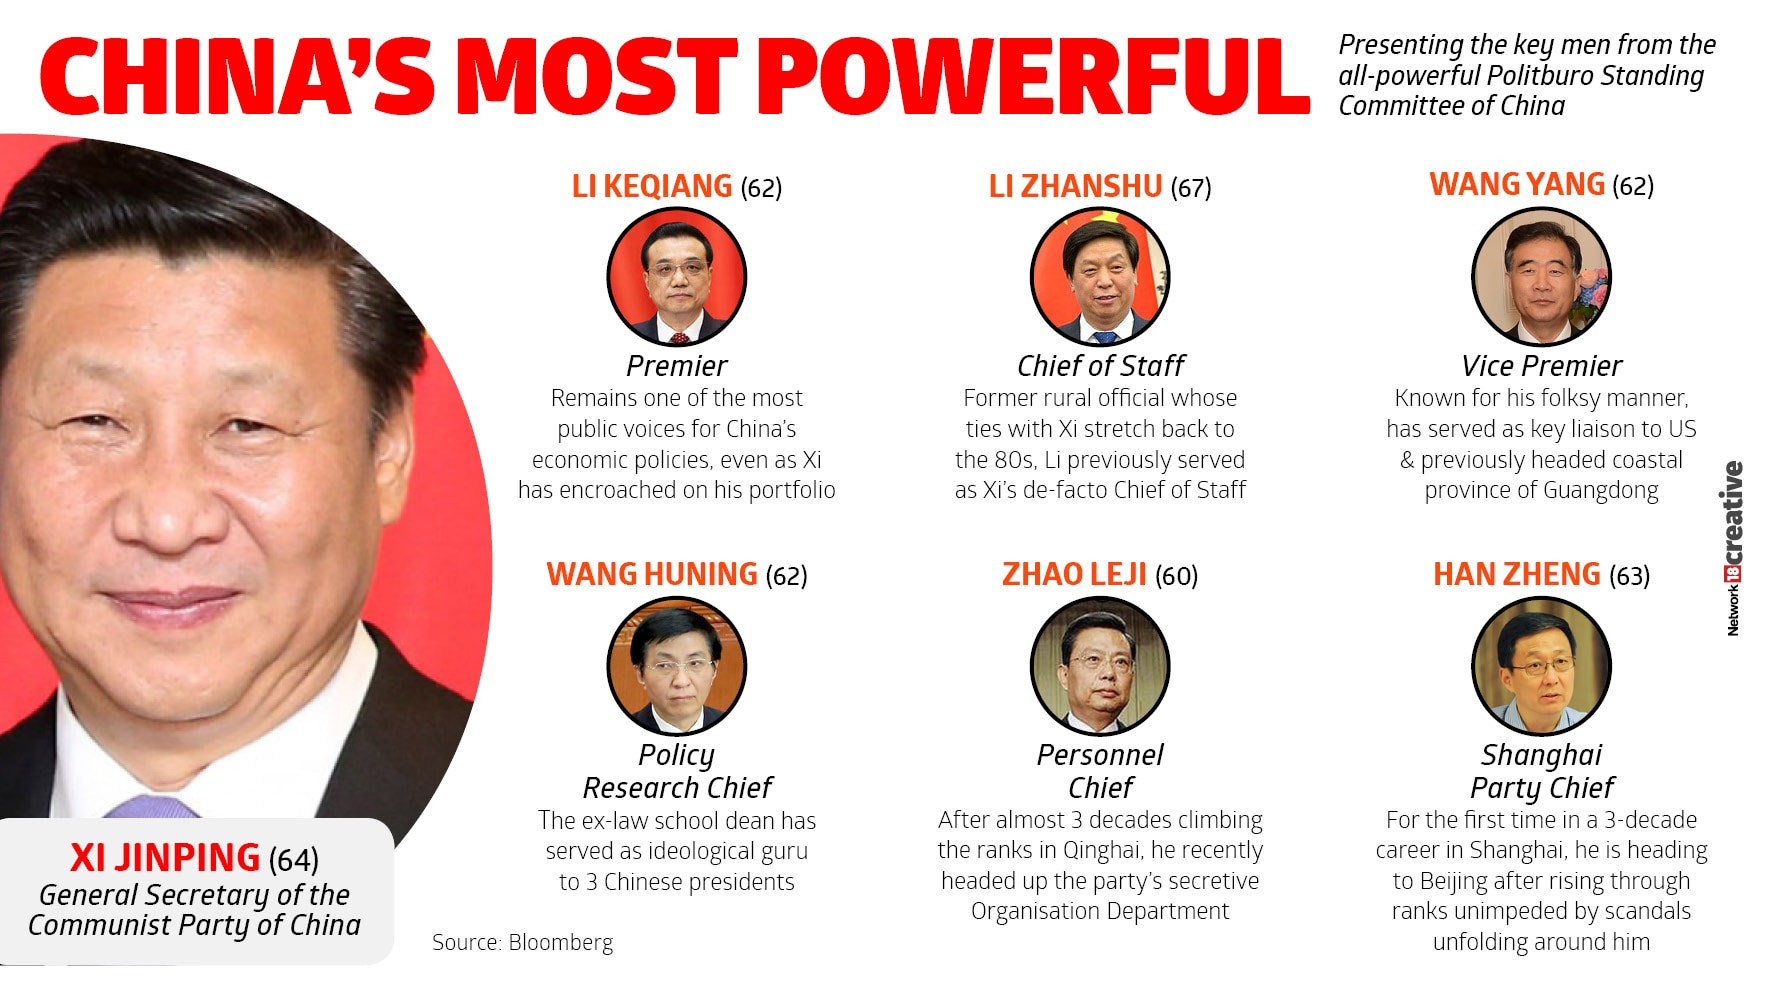 CHINA'S MOST POWERFUL LEADERS2